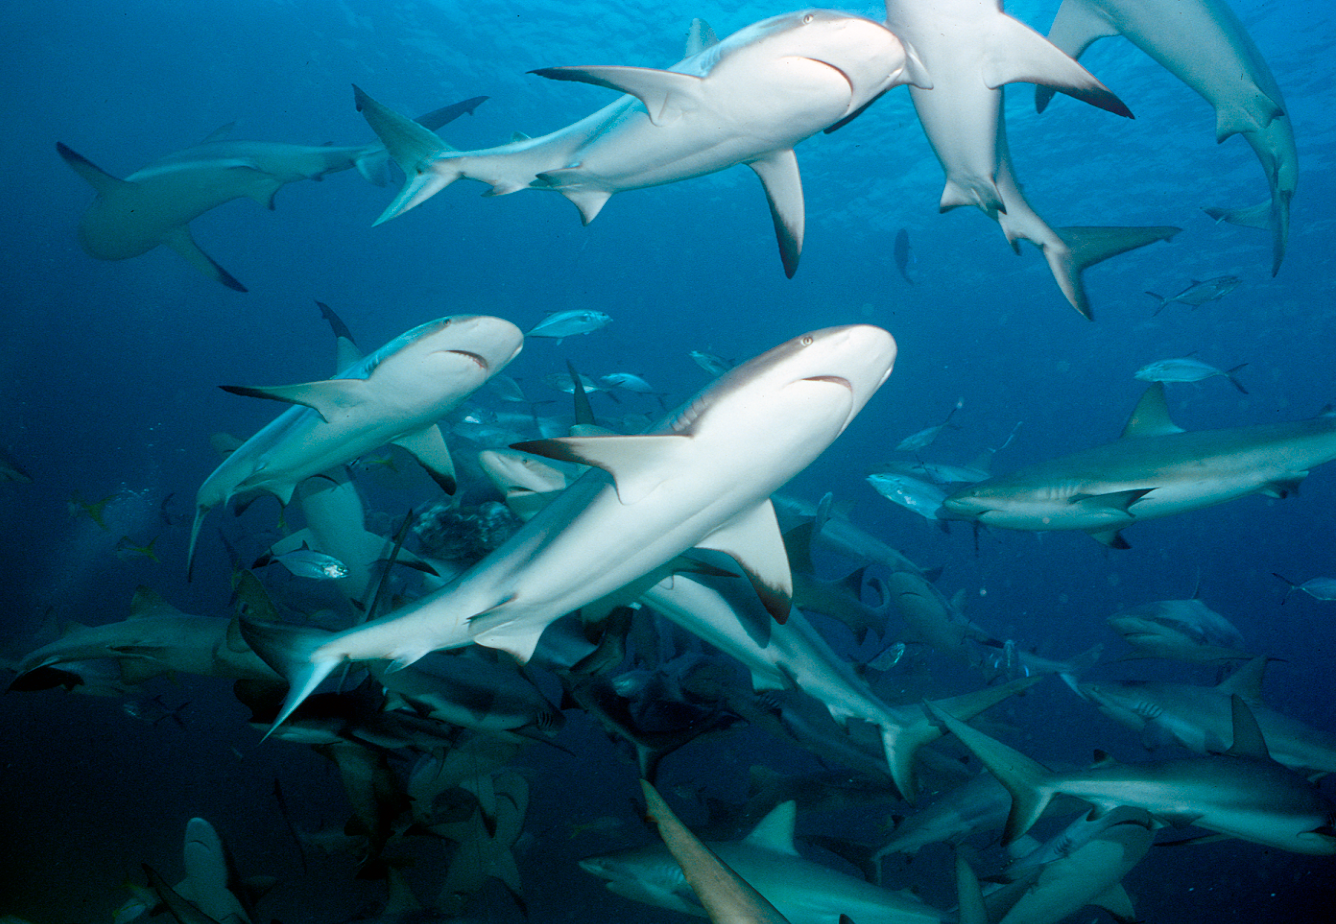 GHOF and Shark Allies Support Signing of Shark Fin Trade Legislation in Florida